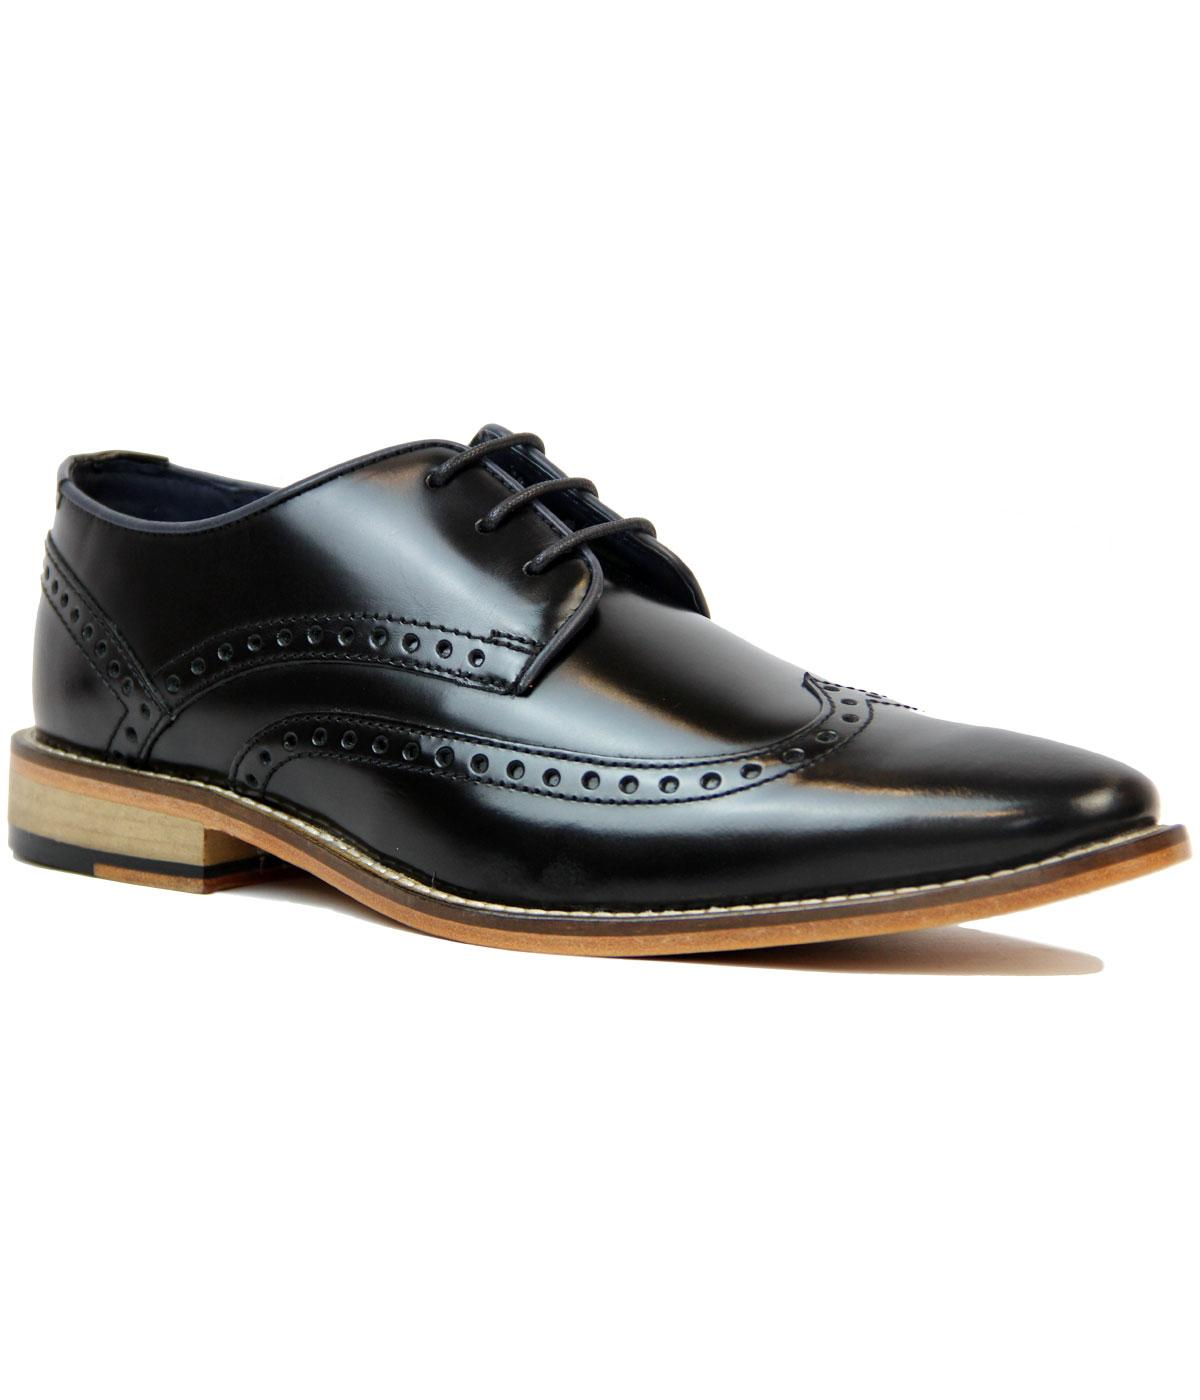 Healy GOODWIN SMITH Retro Indie Derby Shoes